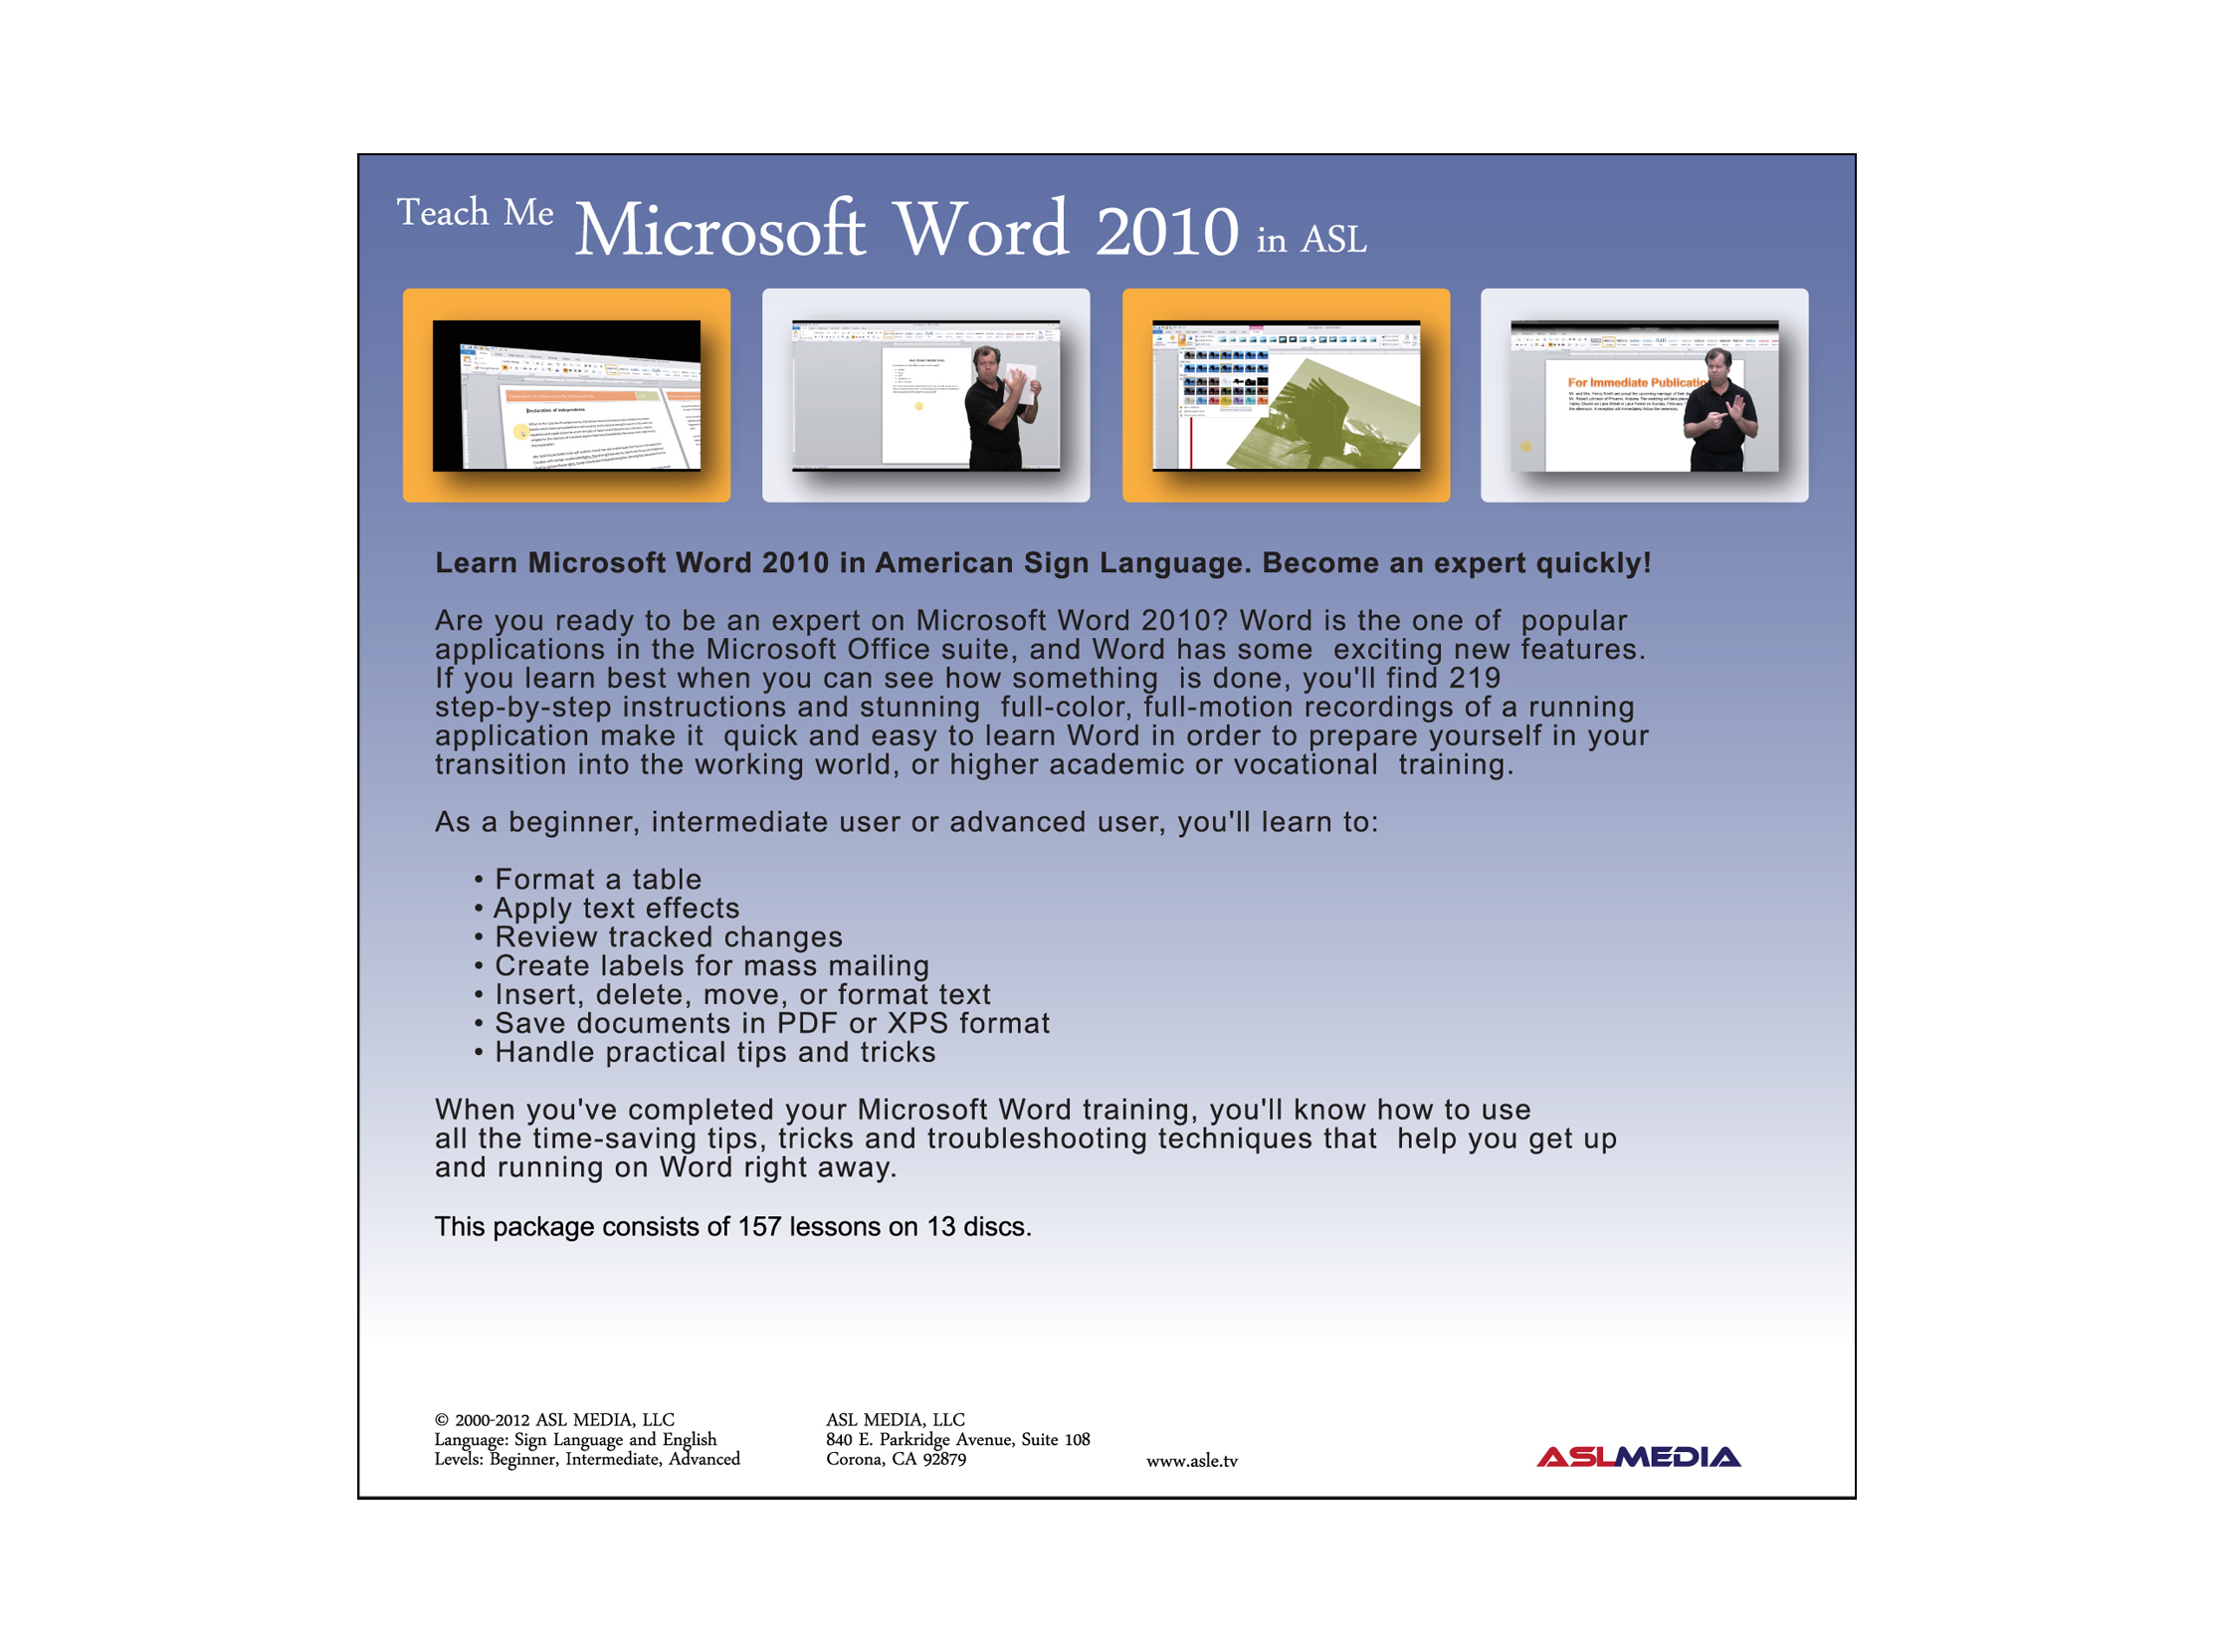 Teach Me Microsoft Word 2010 in ASL - CLASSROOM DVD — ASL MEDIA